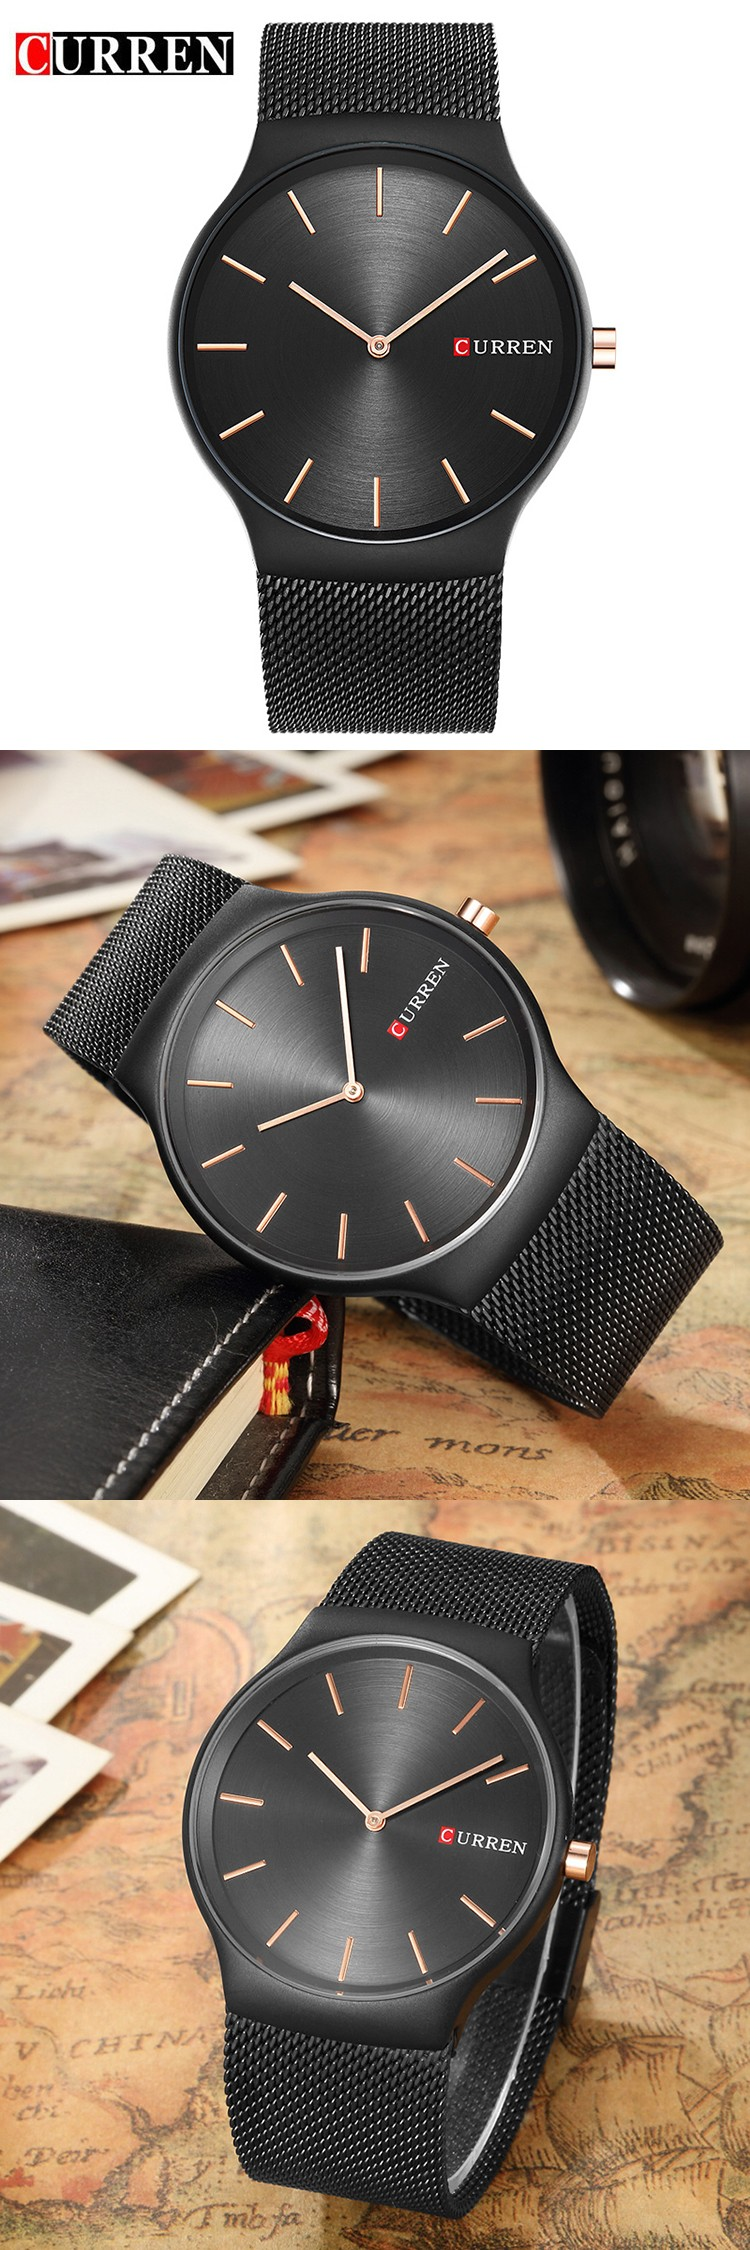 CURREN Relogio Masculino New Mens Watches Top Brand Luxury Stainless Steel Analog Quartz Watch Men Fashion Business Wristwatch